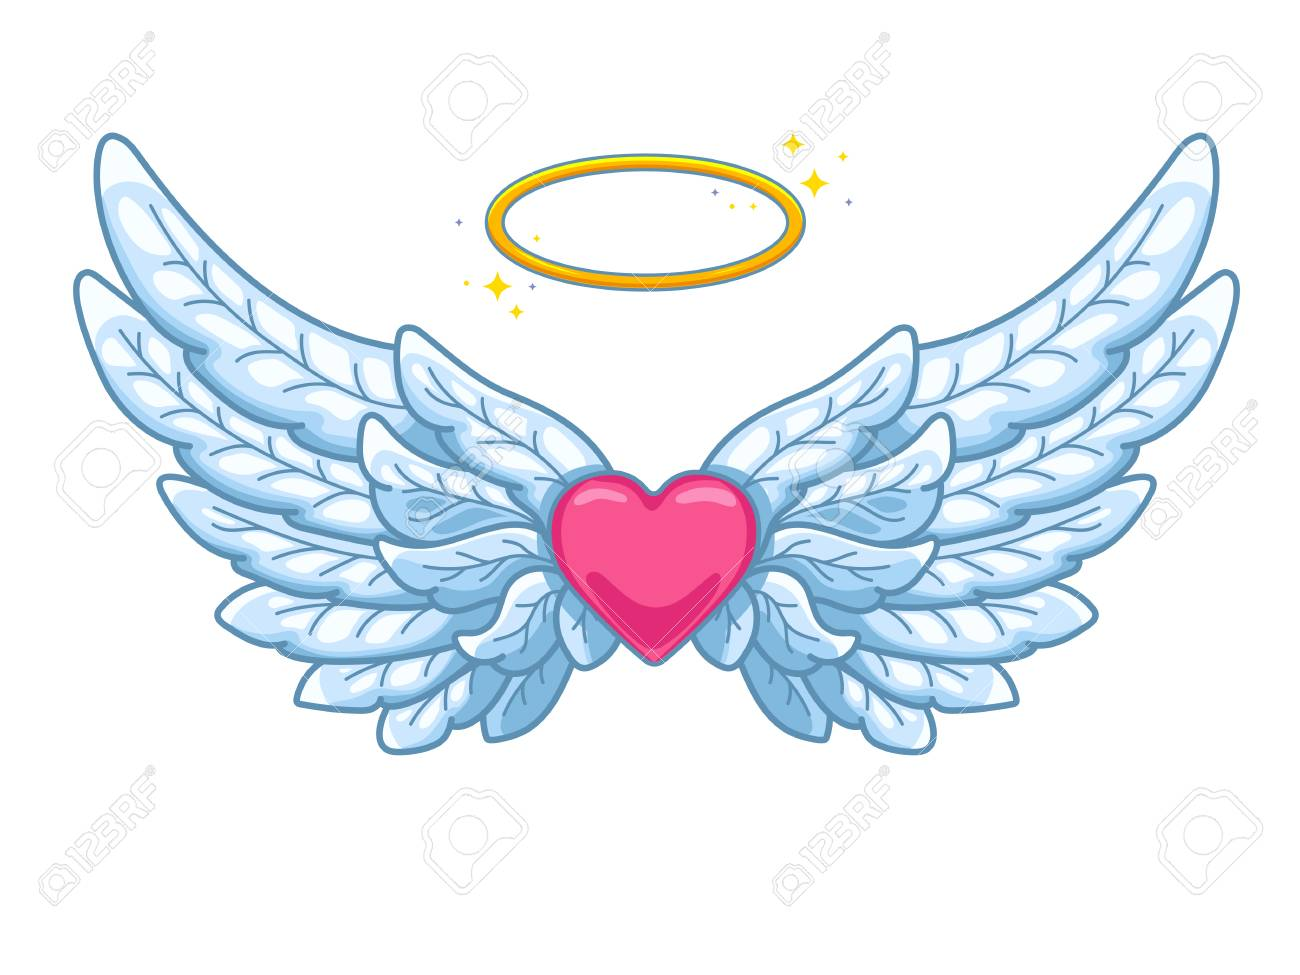 8775a41c7 A pair of wide spread angel wings with golden halo or nimbus and red heart  in the middle. Blue and white feathers. Love and Valentine day symbol.